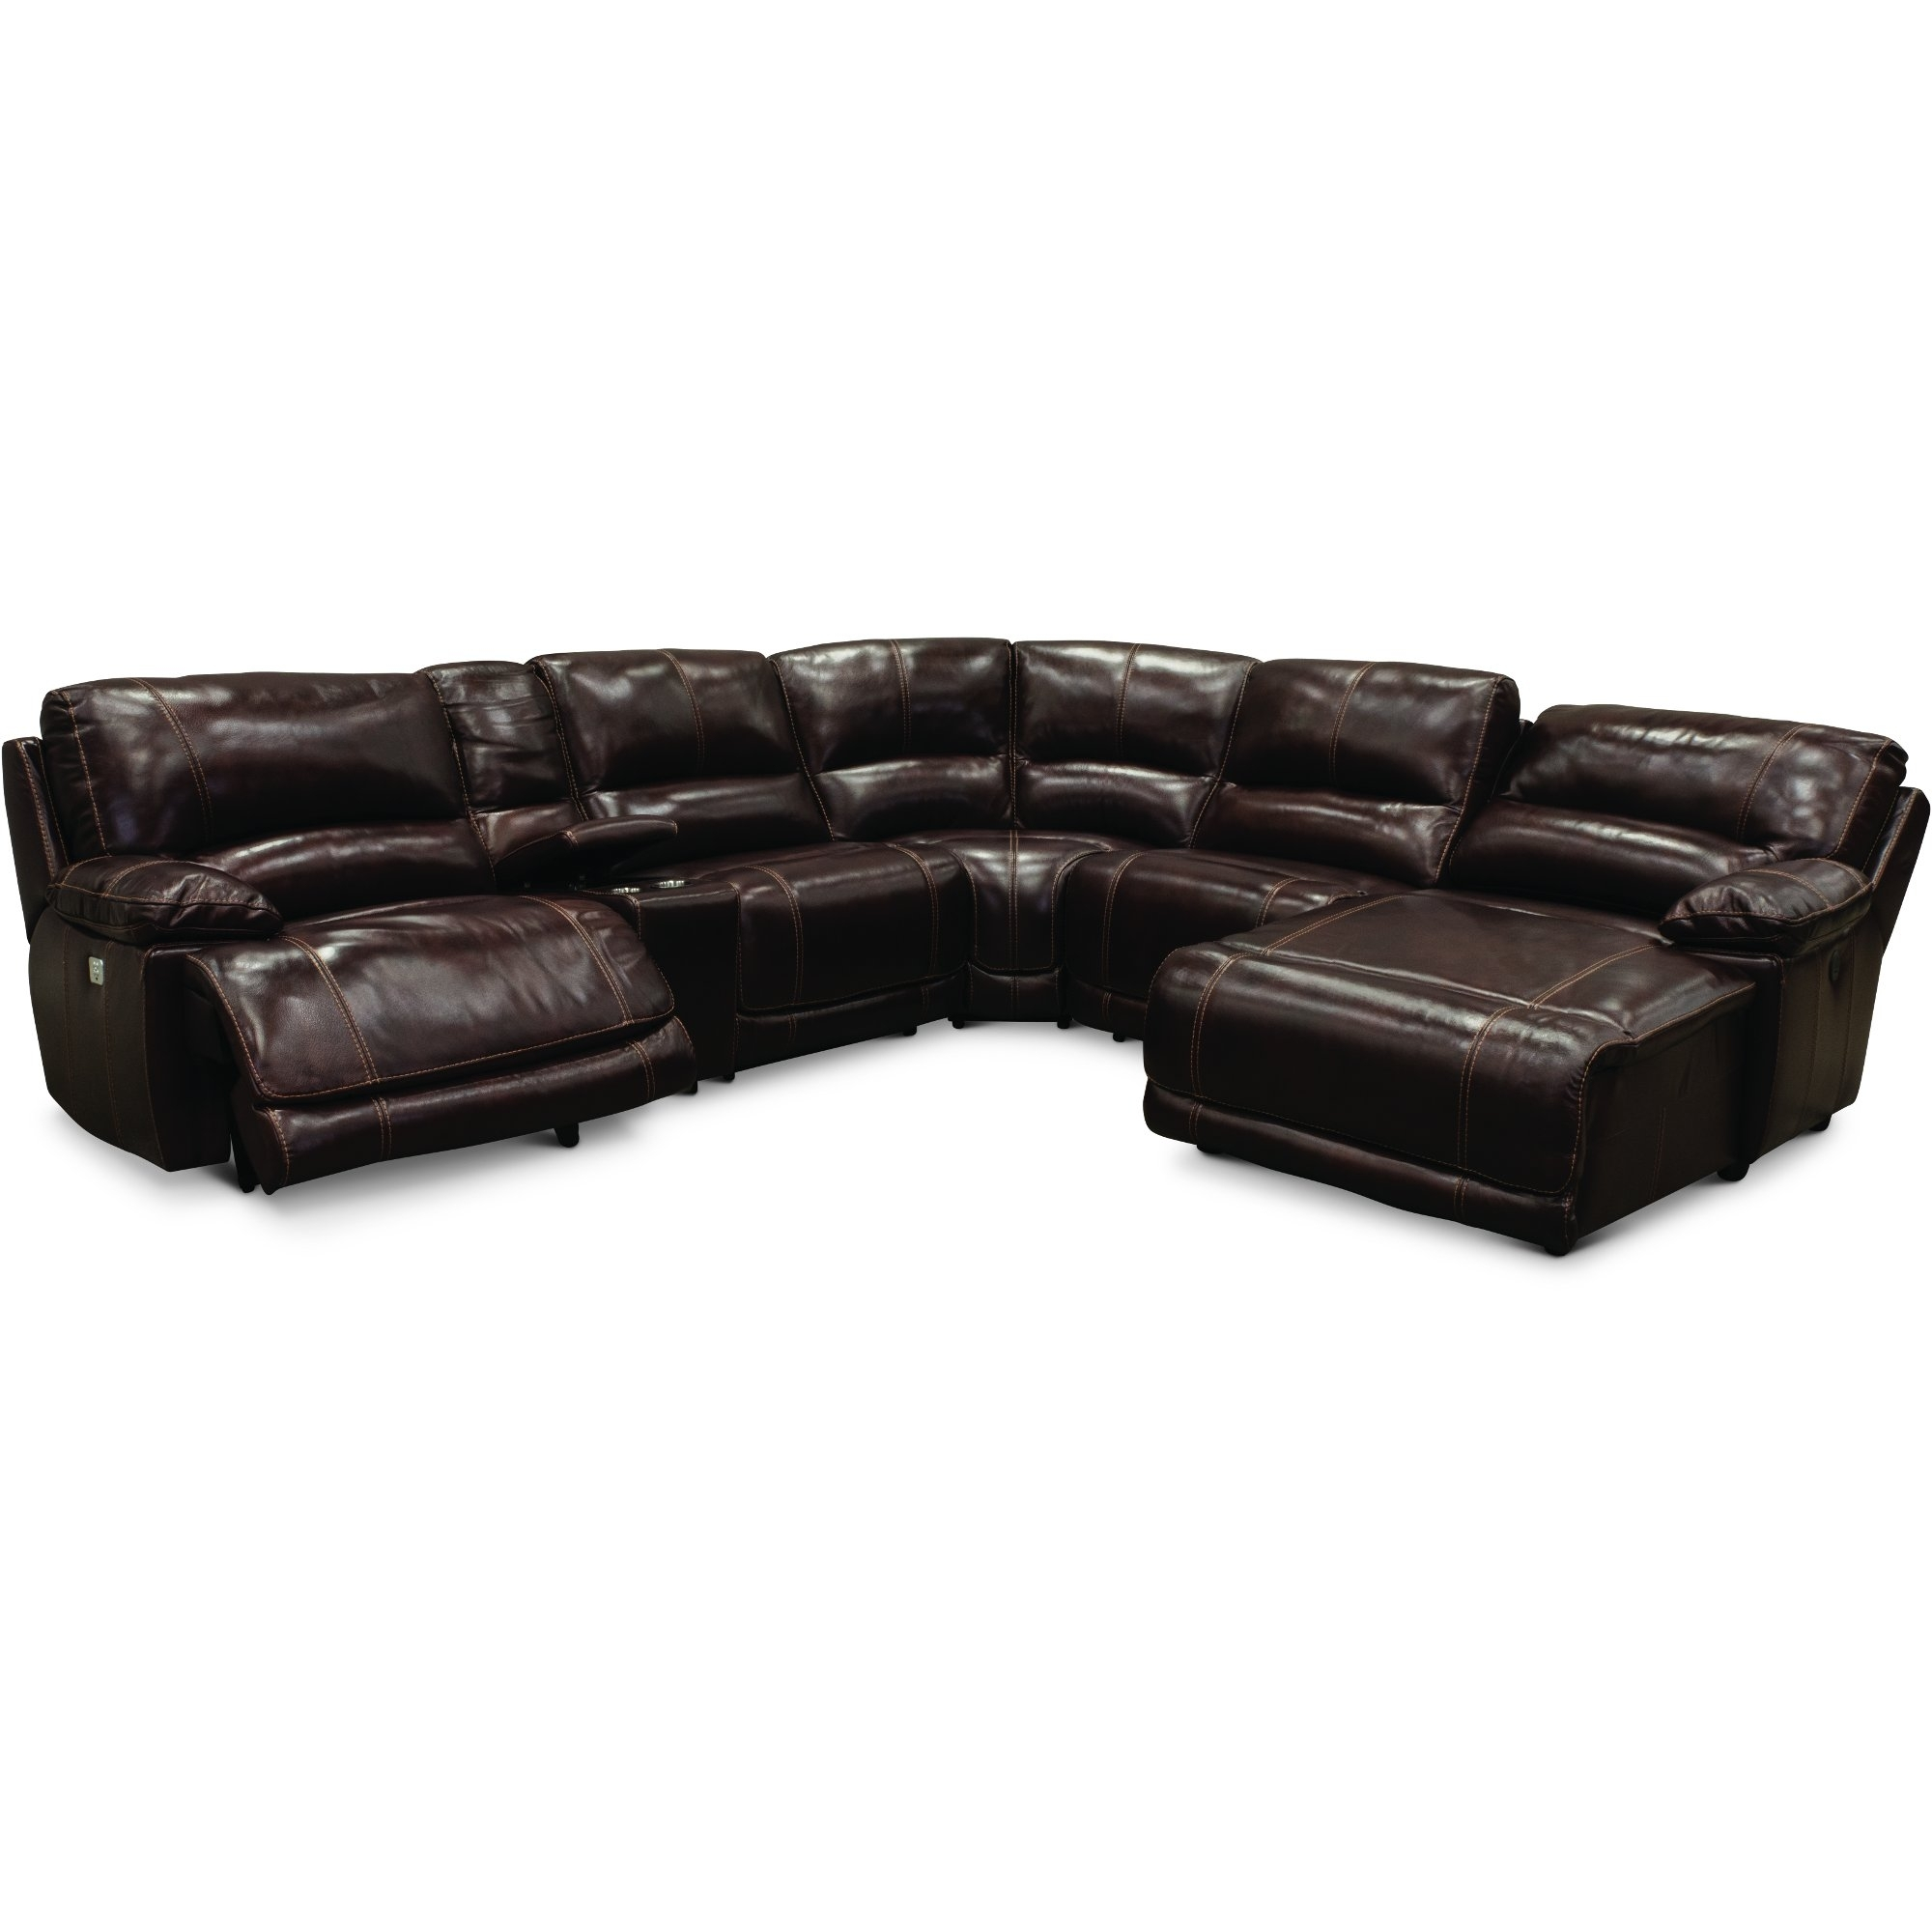 Burgundy 6 Piece Power Reclining Sectional Sofa – Brant | Rc Willey Intended For Jackson 6 Piece Power Reclining Sectionals With Sleeper (View 10 of 25)